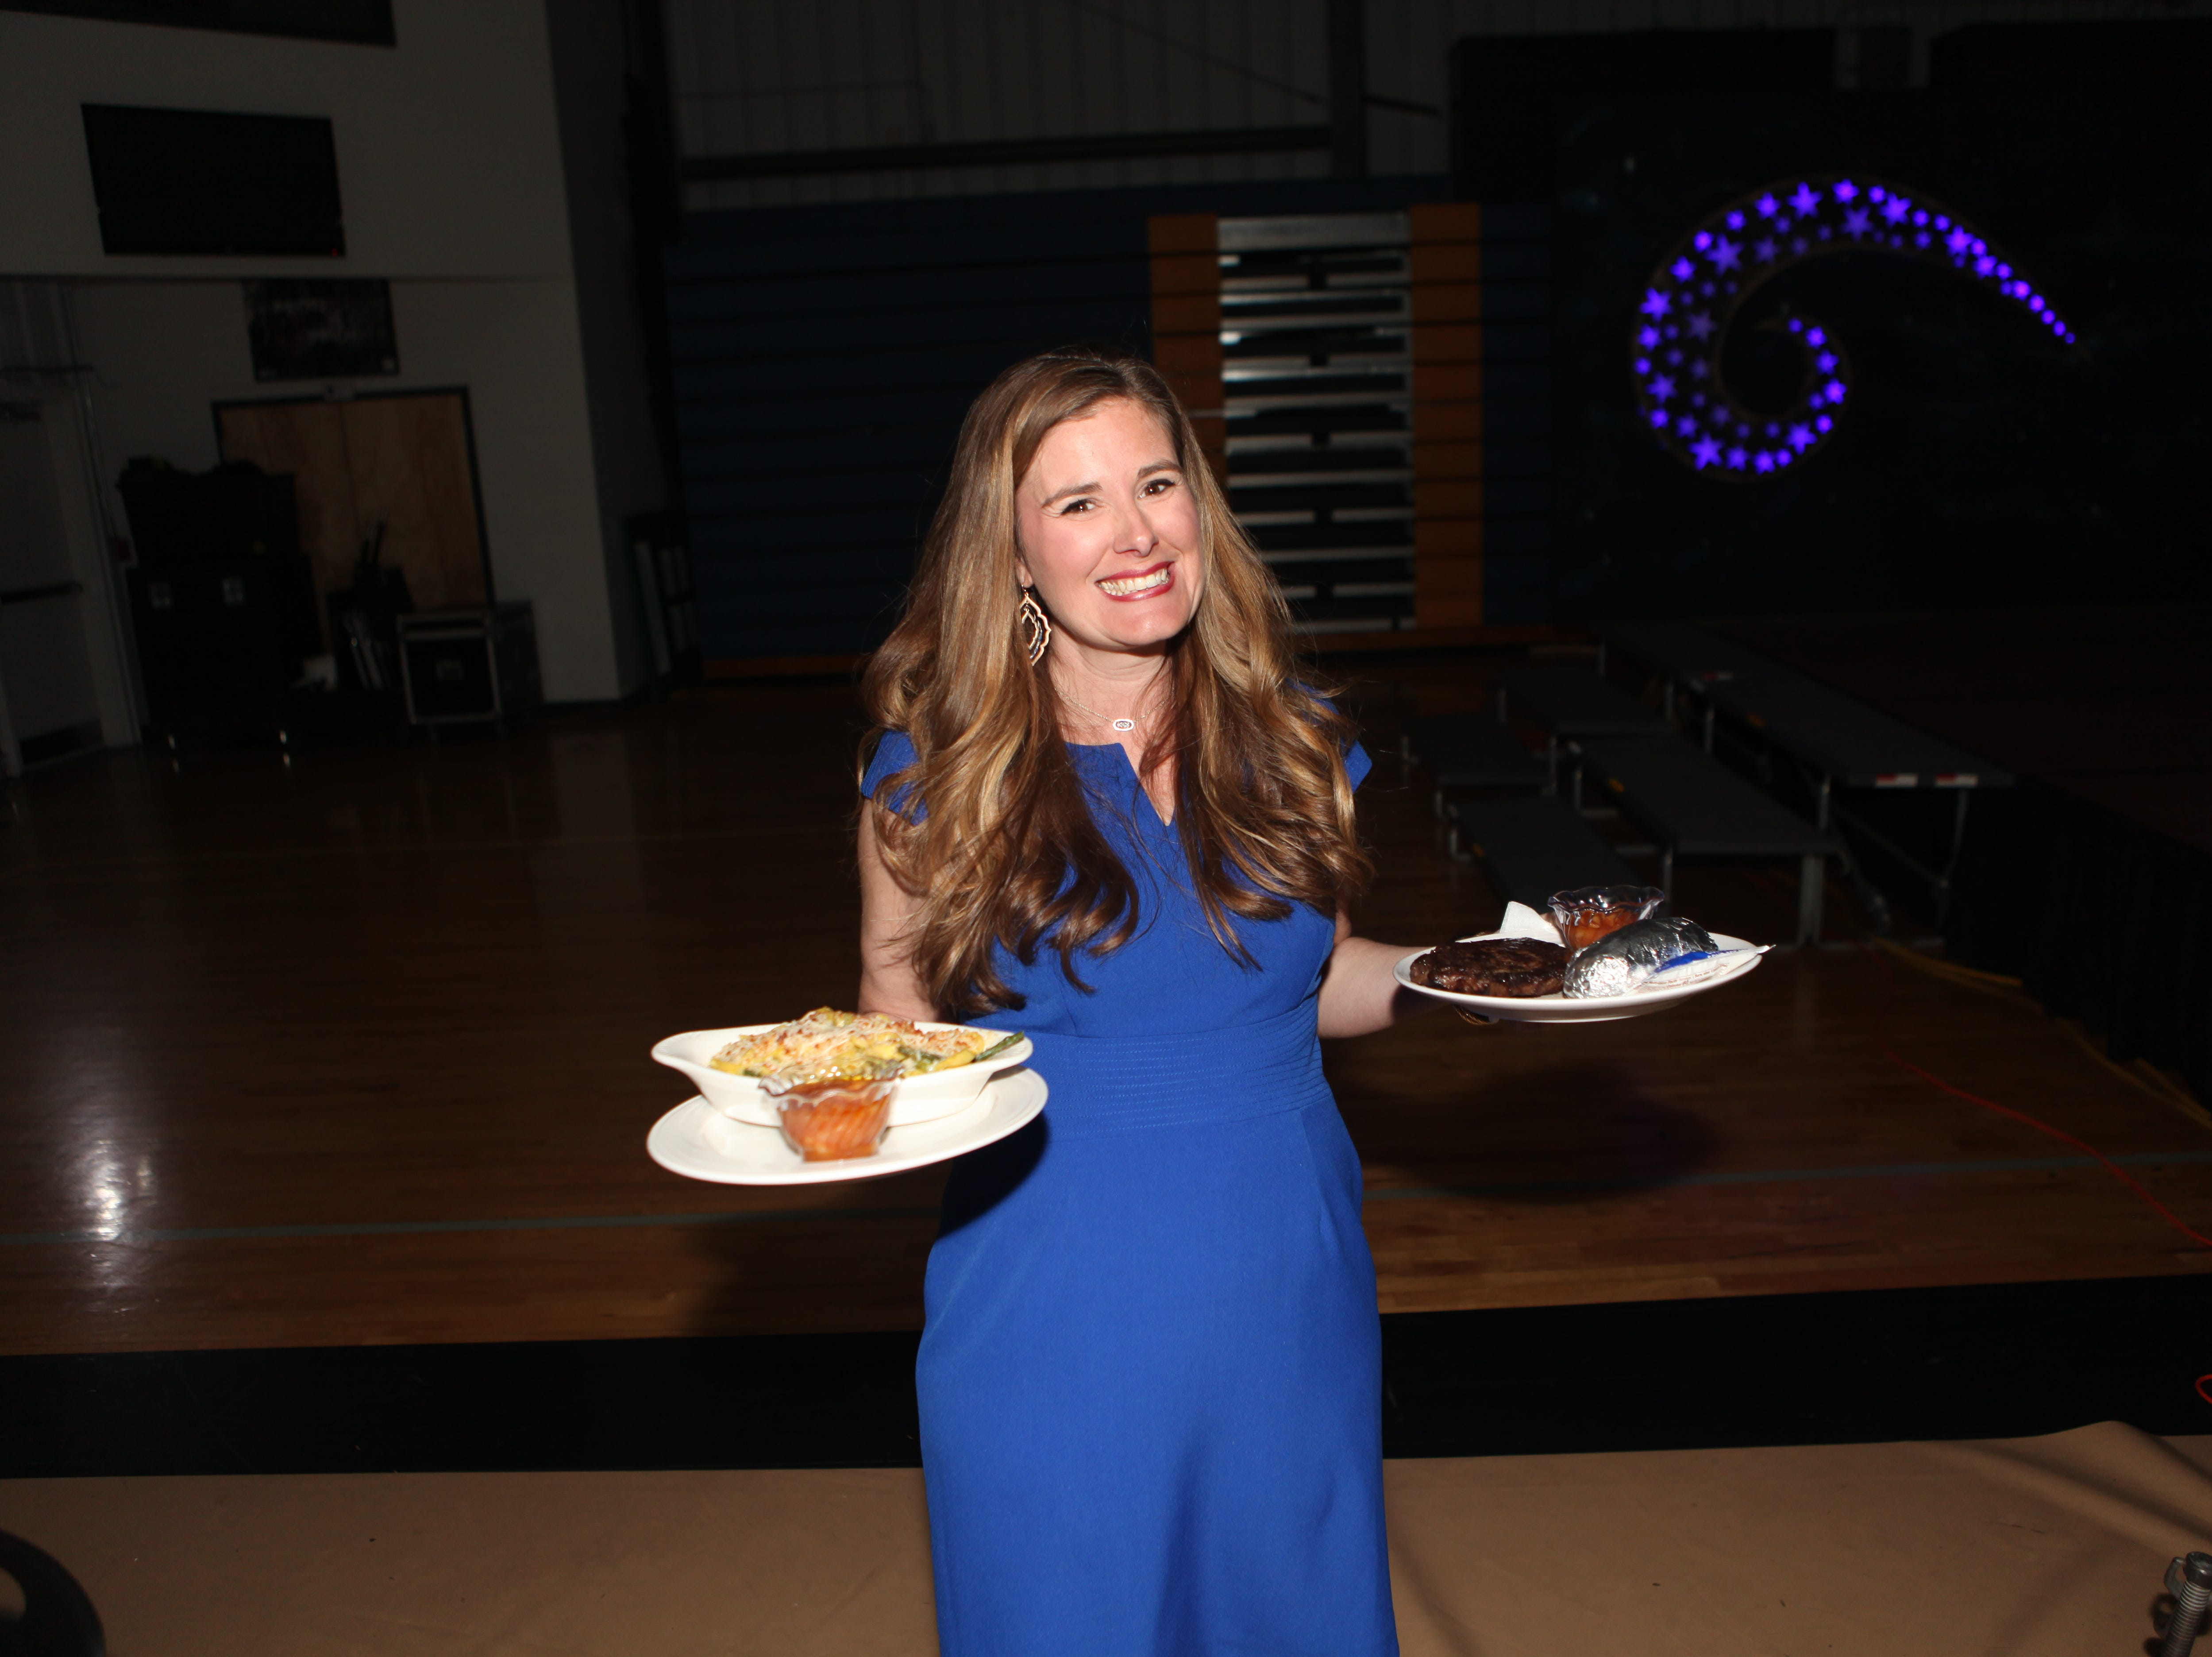 Sally Allen helping out at Clarksville Academy's Steak Dinner on Saturday, April 13, 2019.